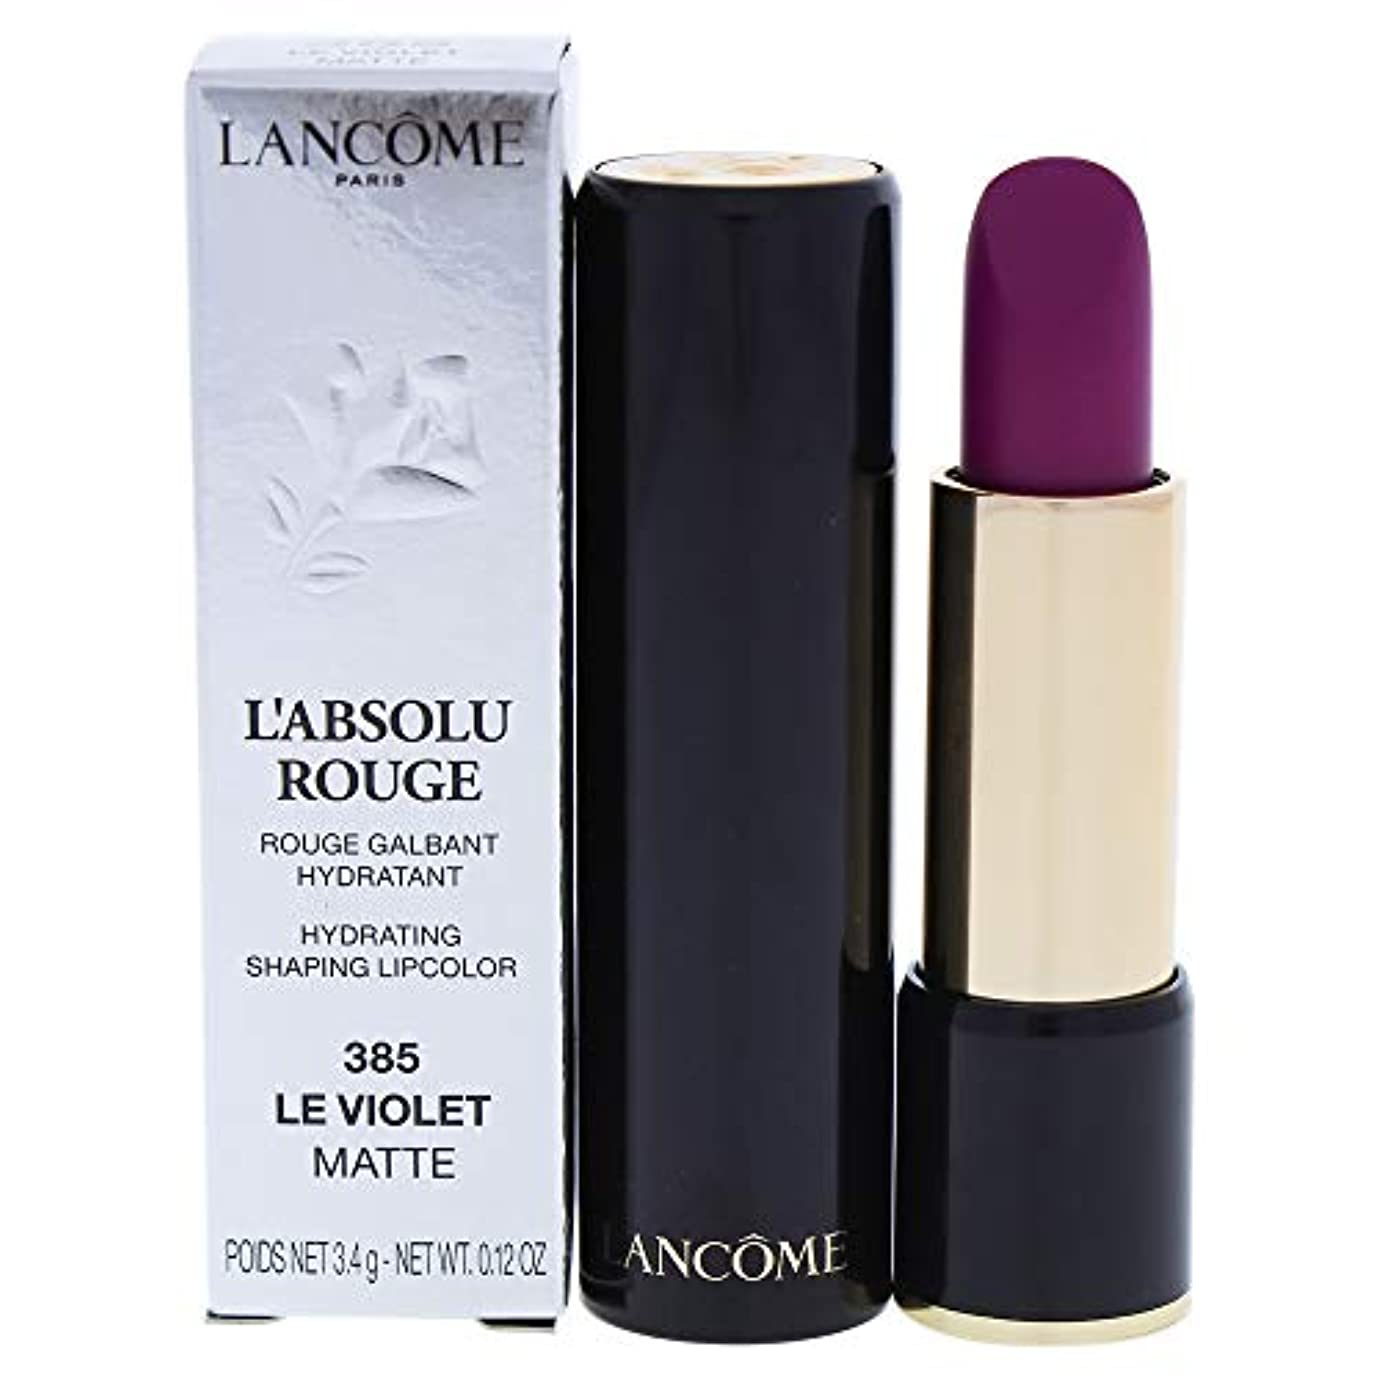 泣き叫ぶ温帯にランコム L' Absolu Rouge Hydrating Shaping Lipcolor - # 385 Le Violet (Matte) 3.4g/0.12oz並行輸入品